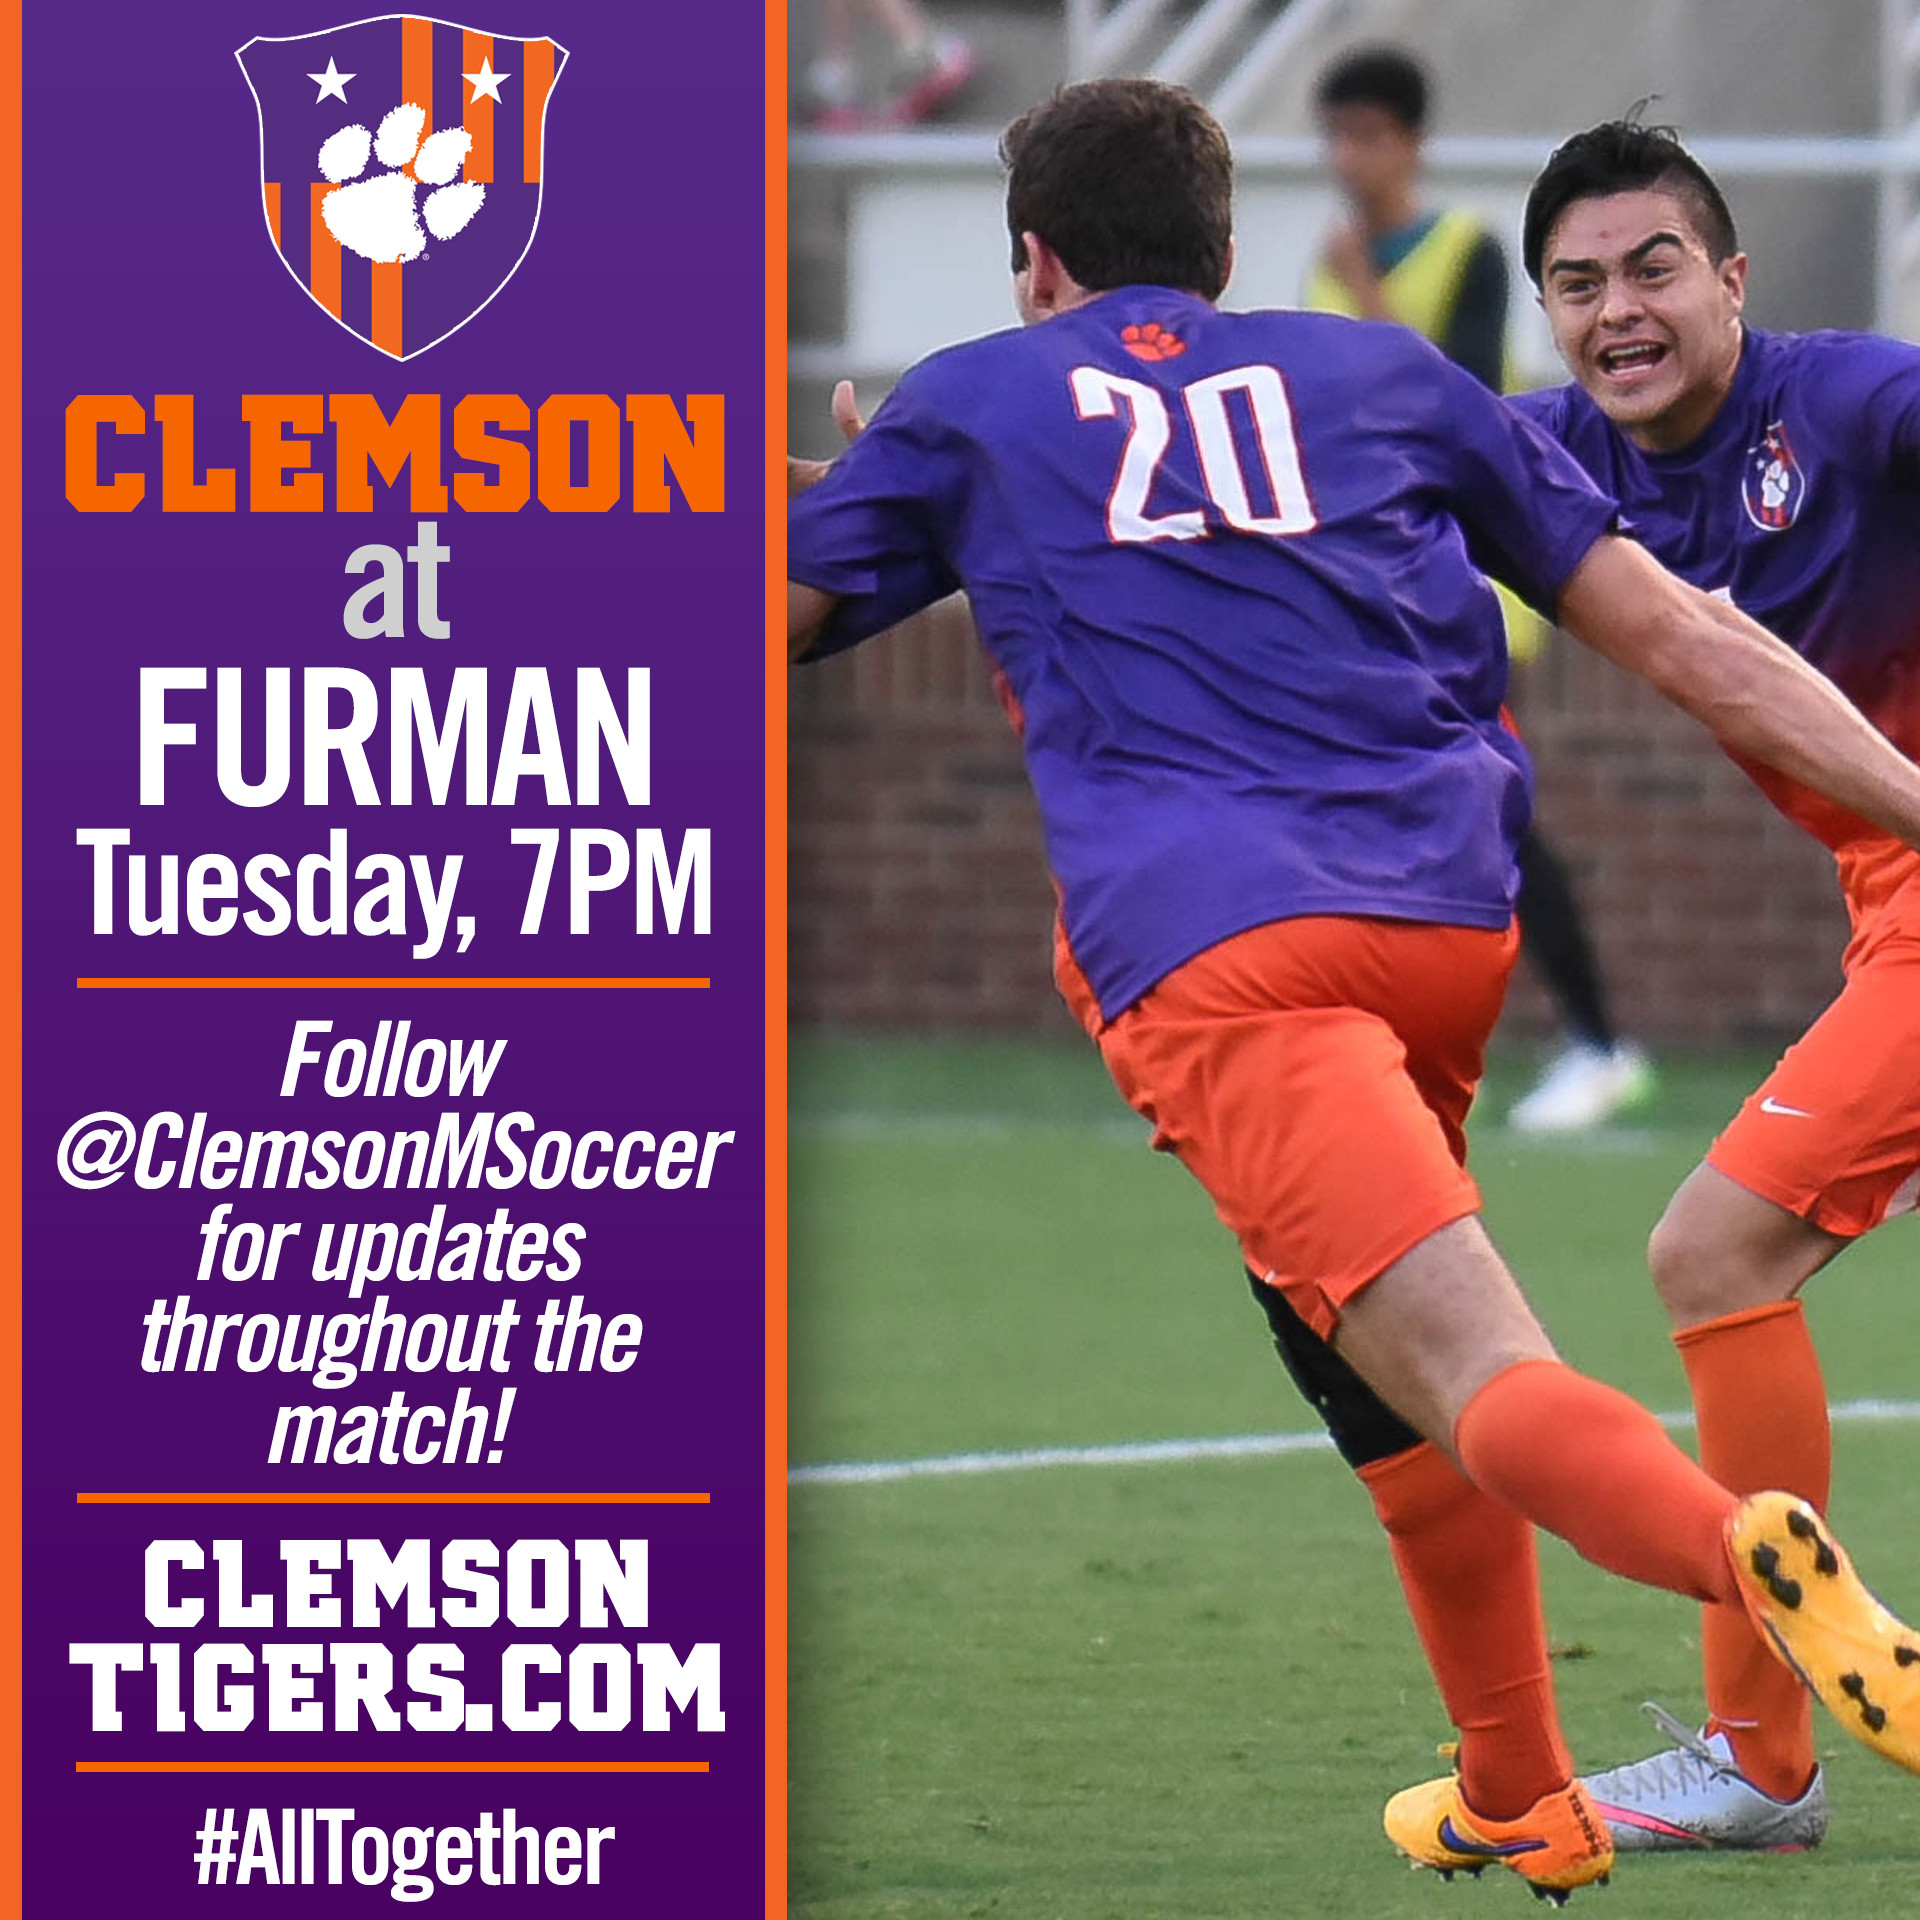 No. 5 Clemson Travels to Furman Tuesday Night